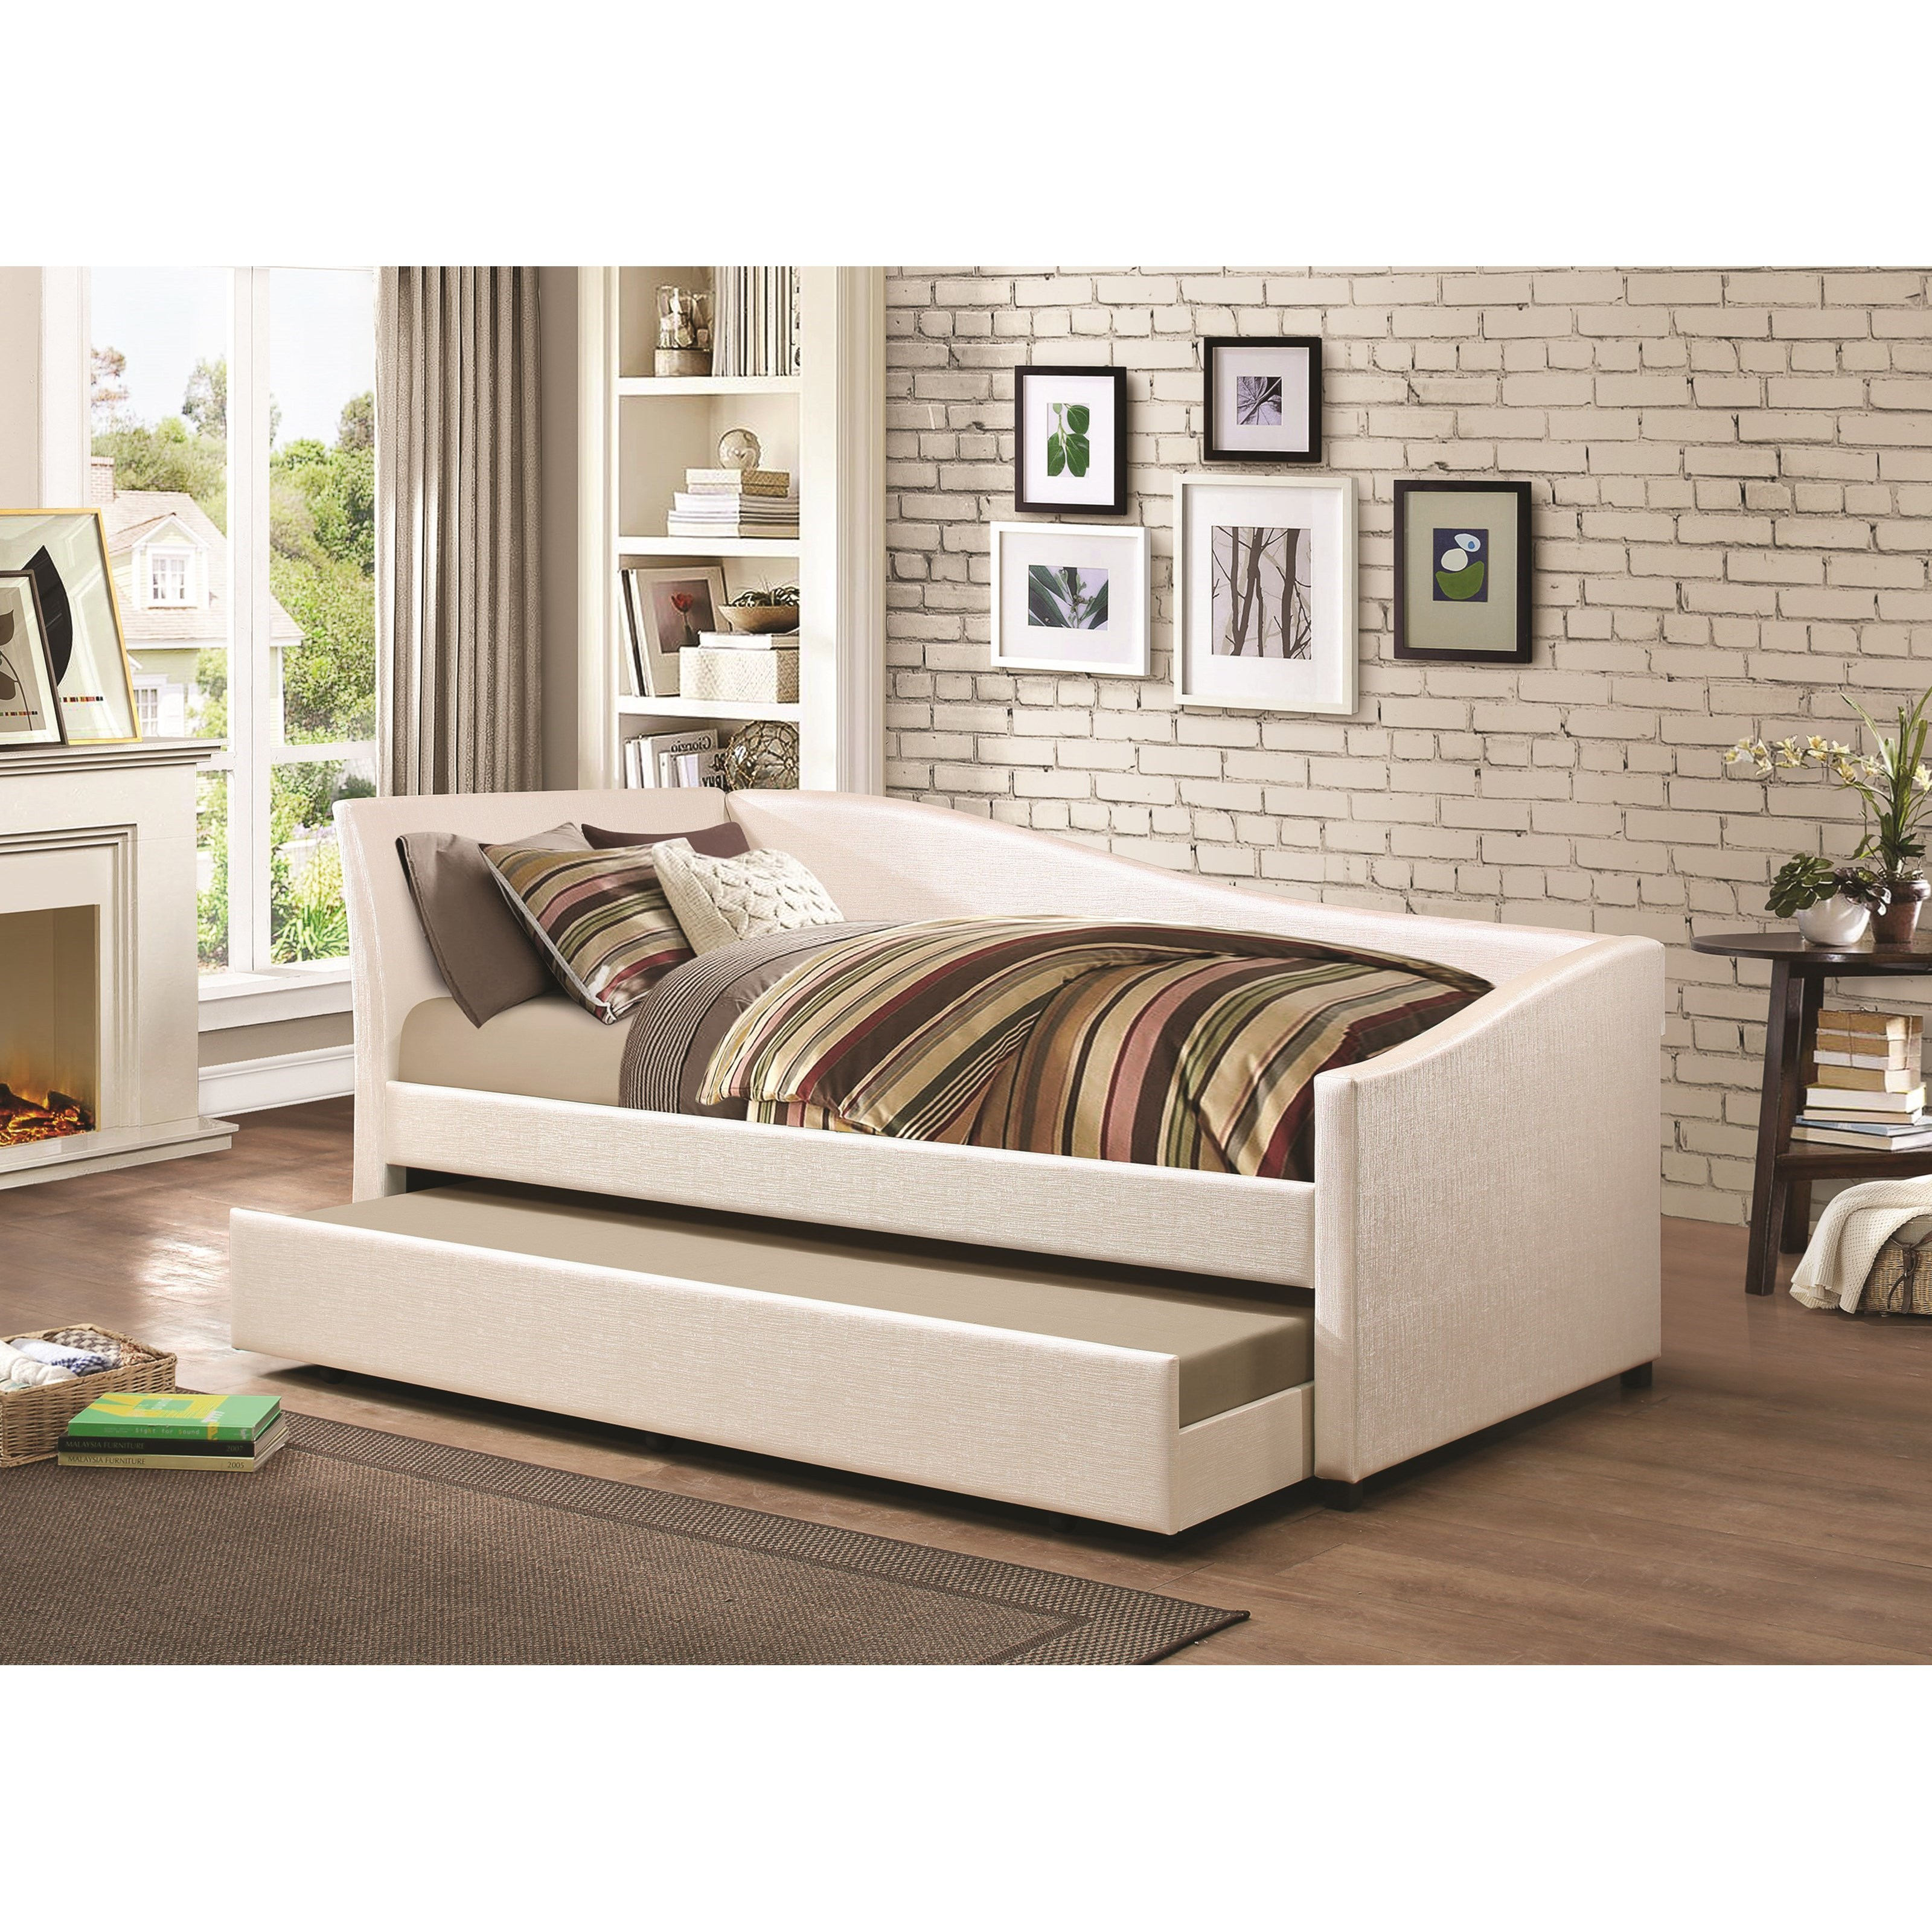 Coaster Daybeds By Coaster Twin Daybed With Upholstered Ivory Fabric And  Trundle